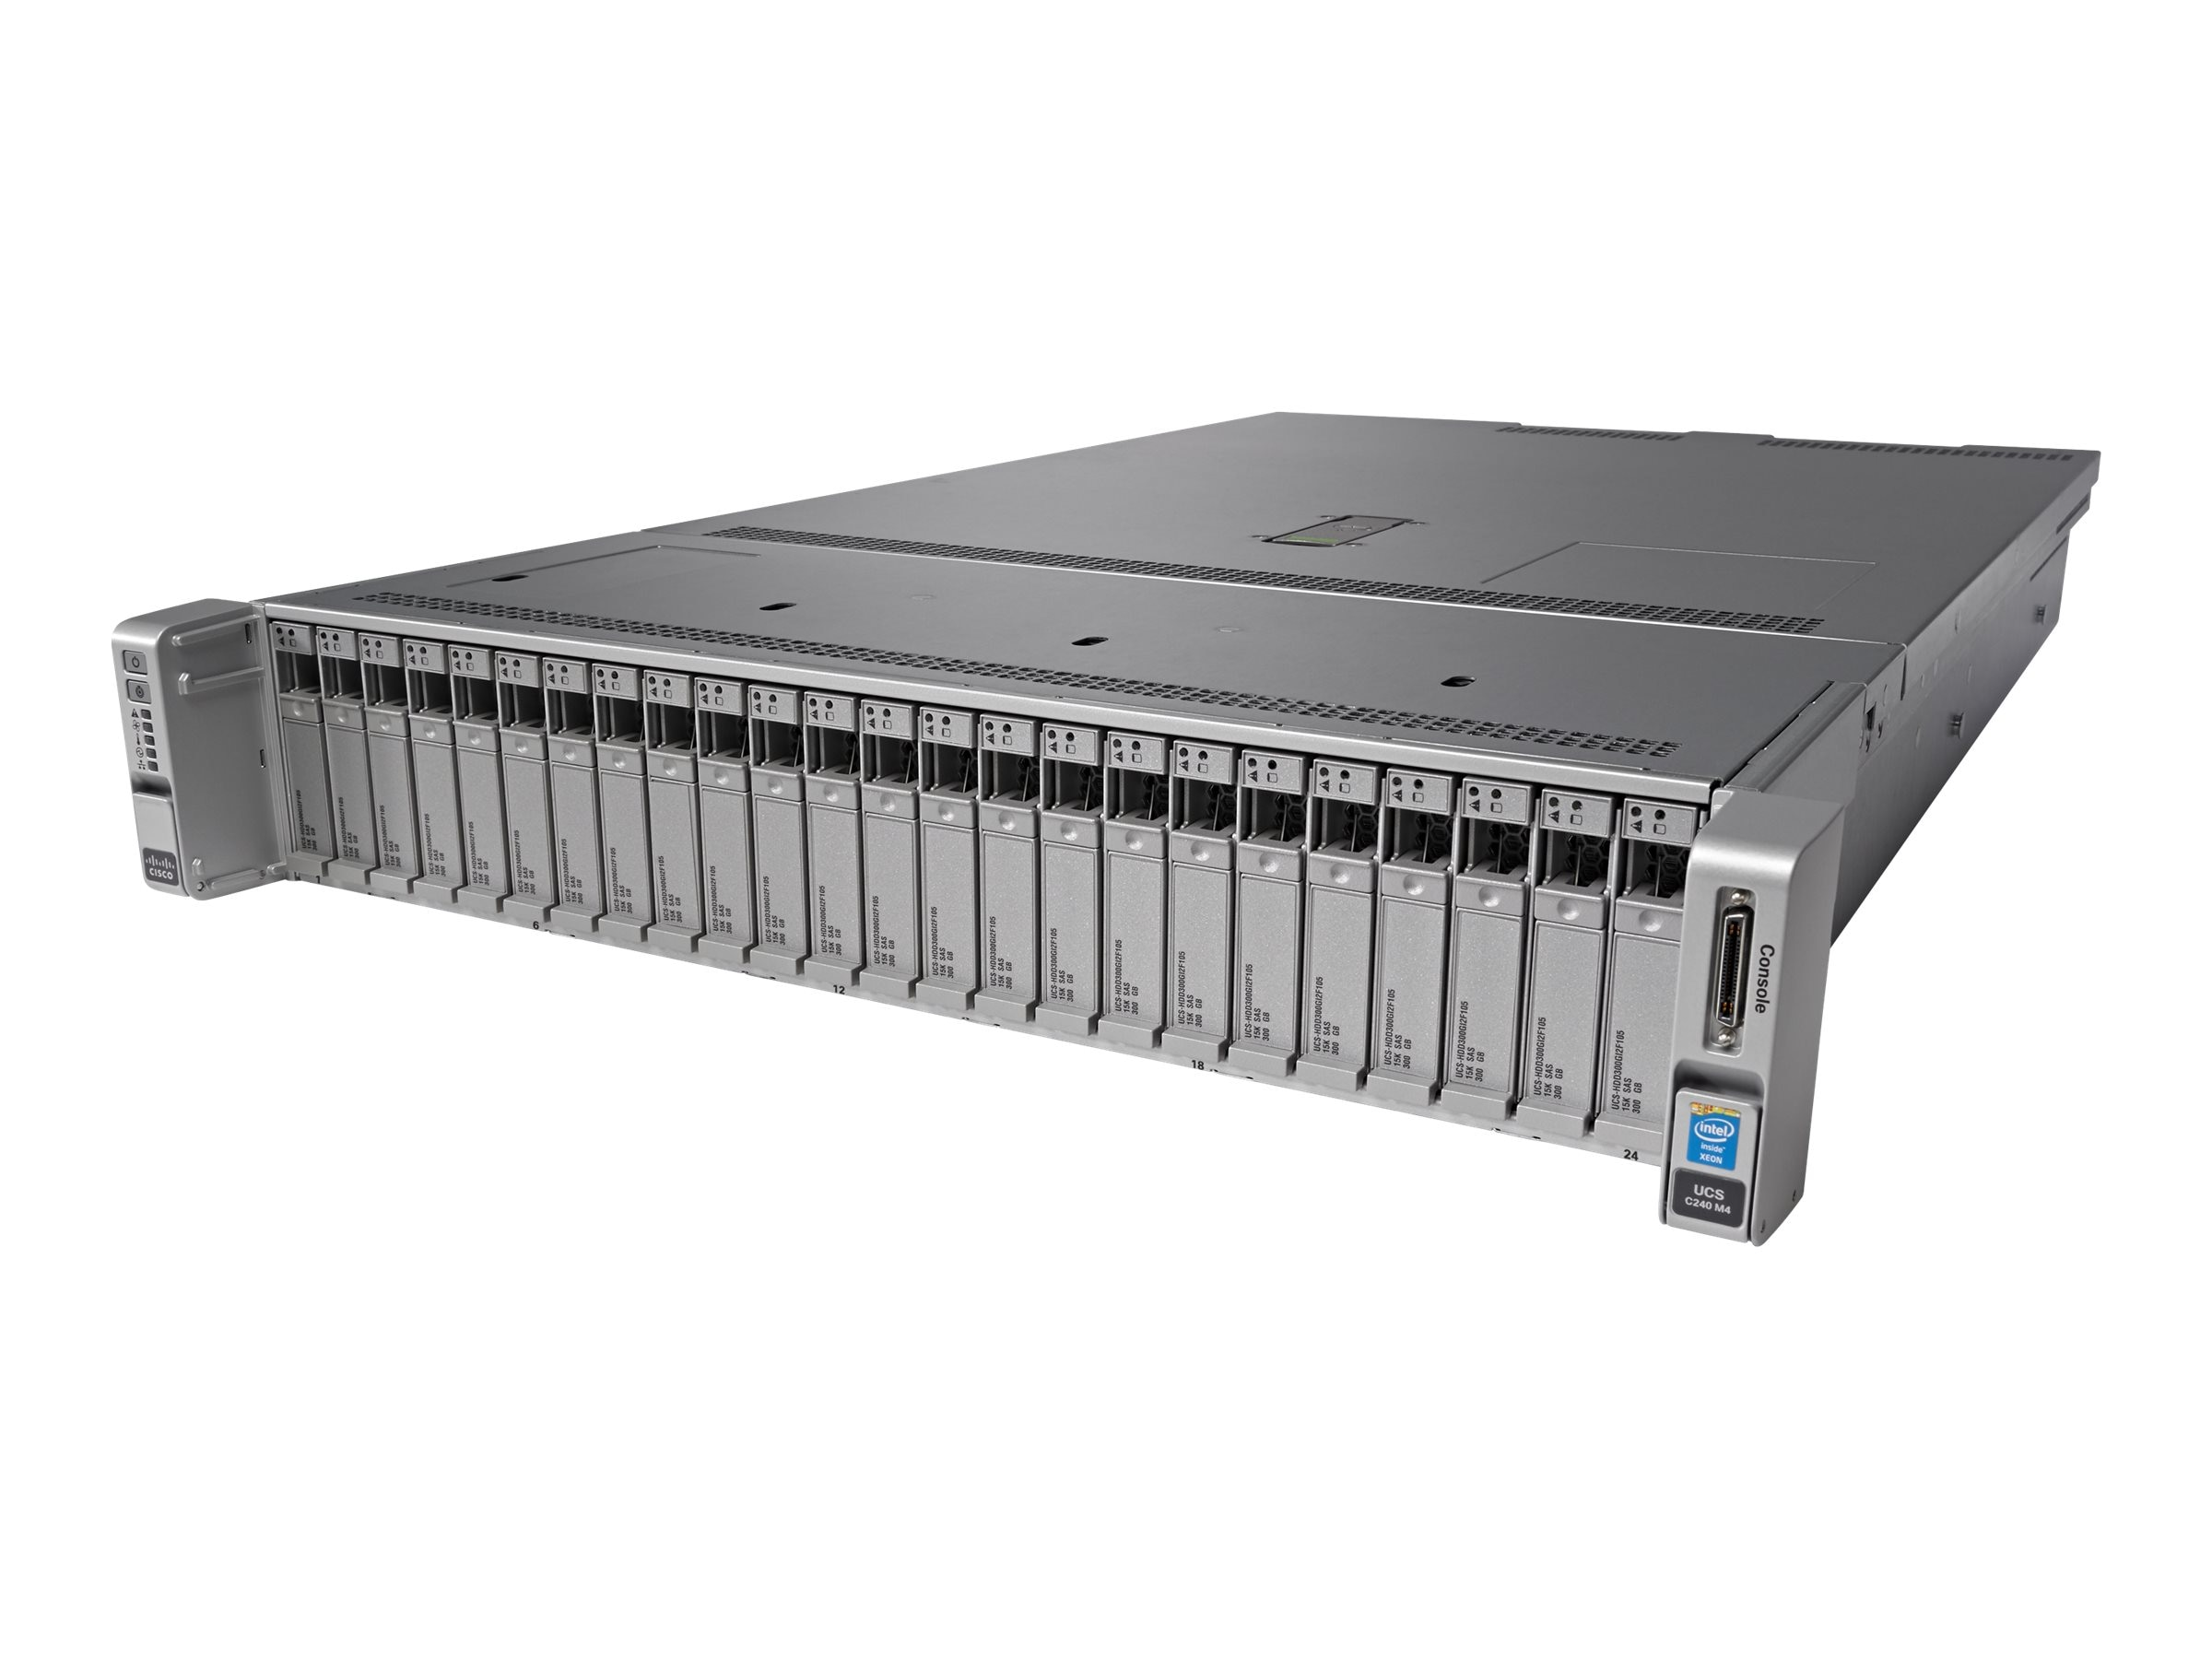 Cisco UCS-SPR-C240M4-BS3 Image 1